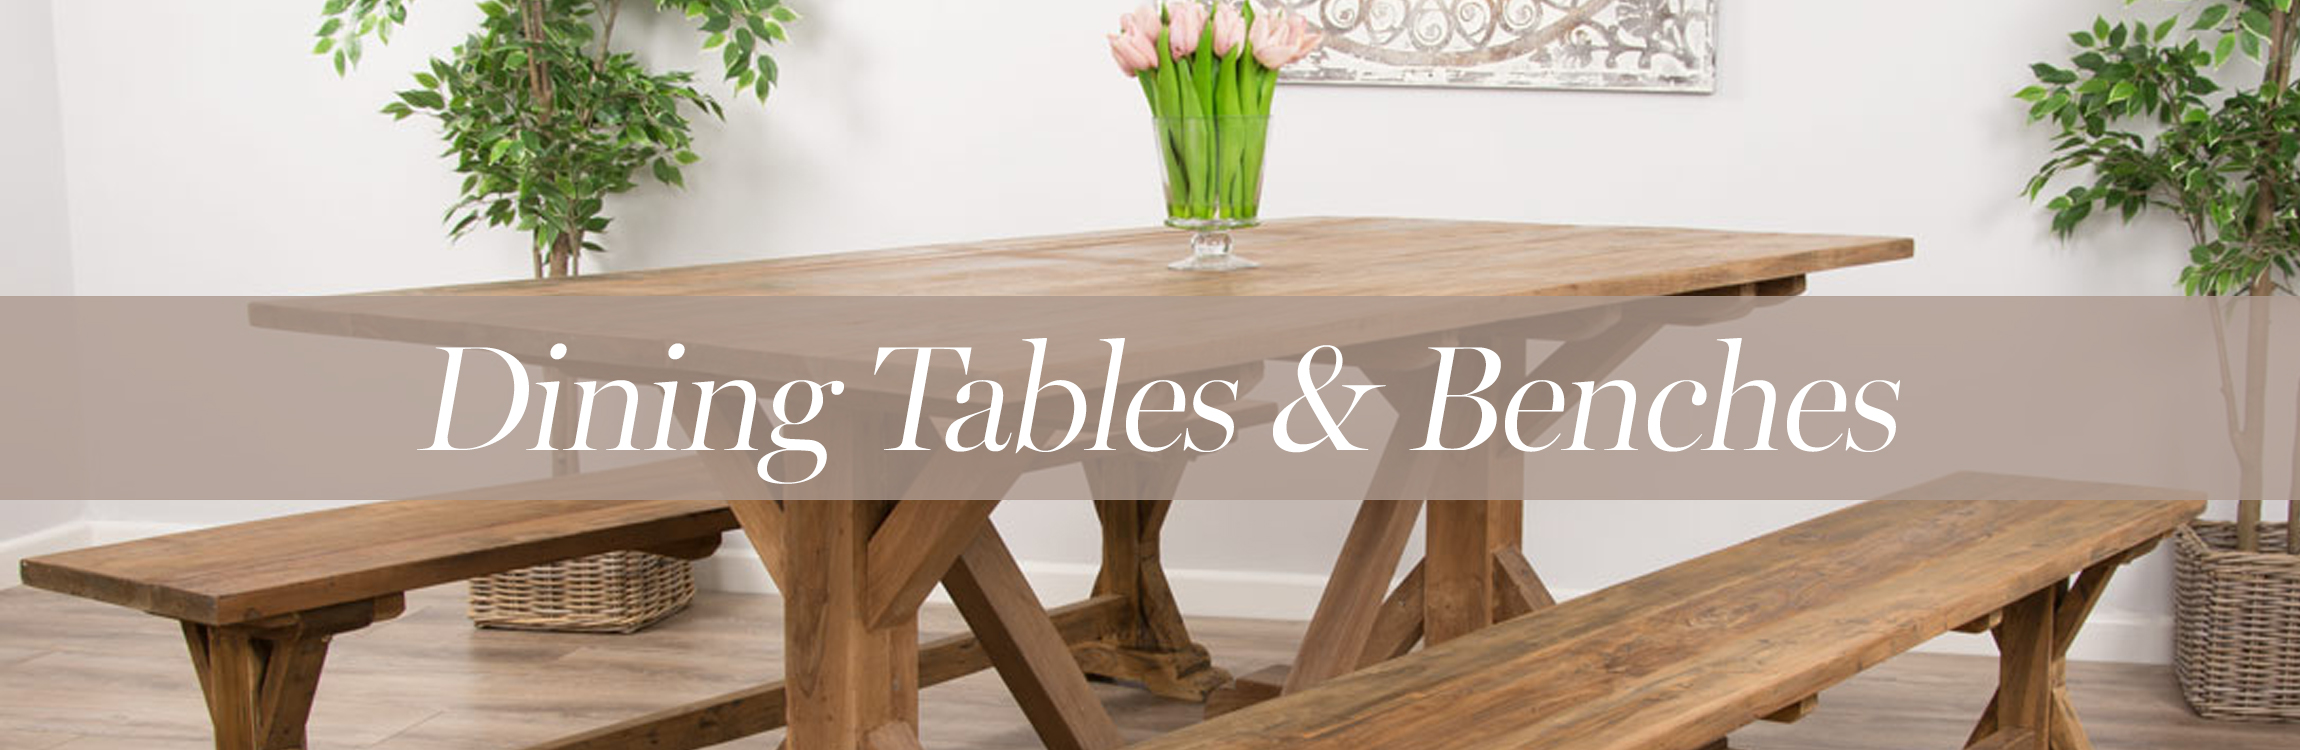 Dining Table and Bench Sets